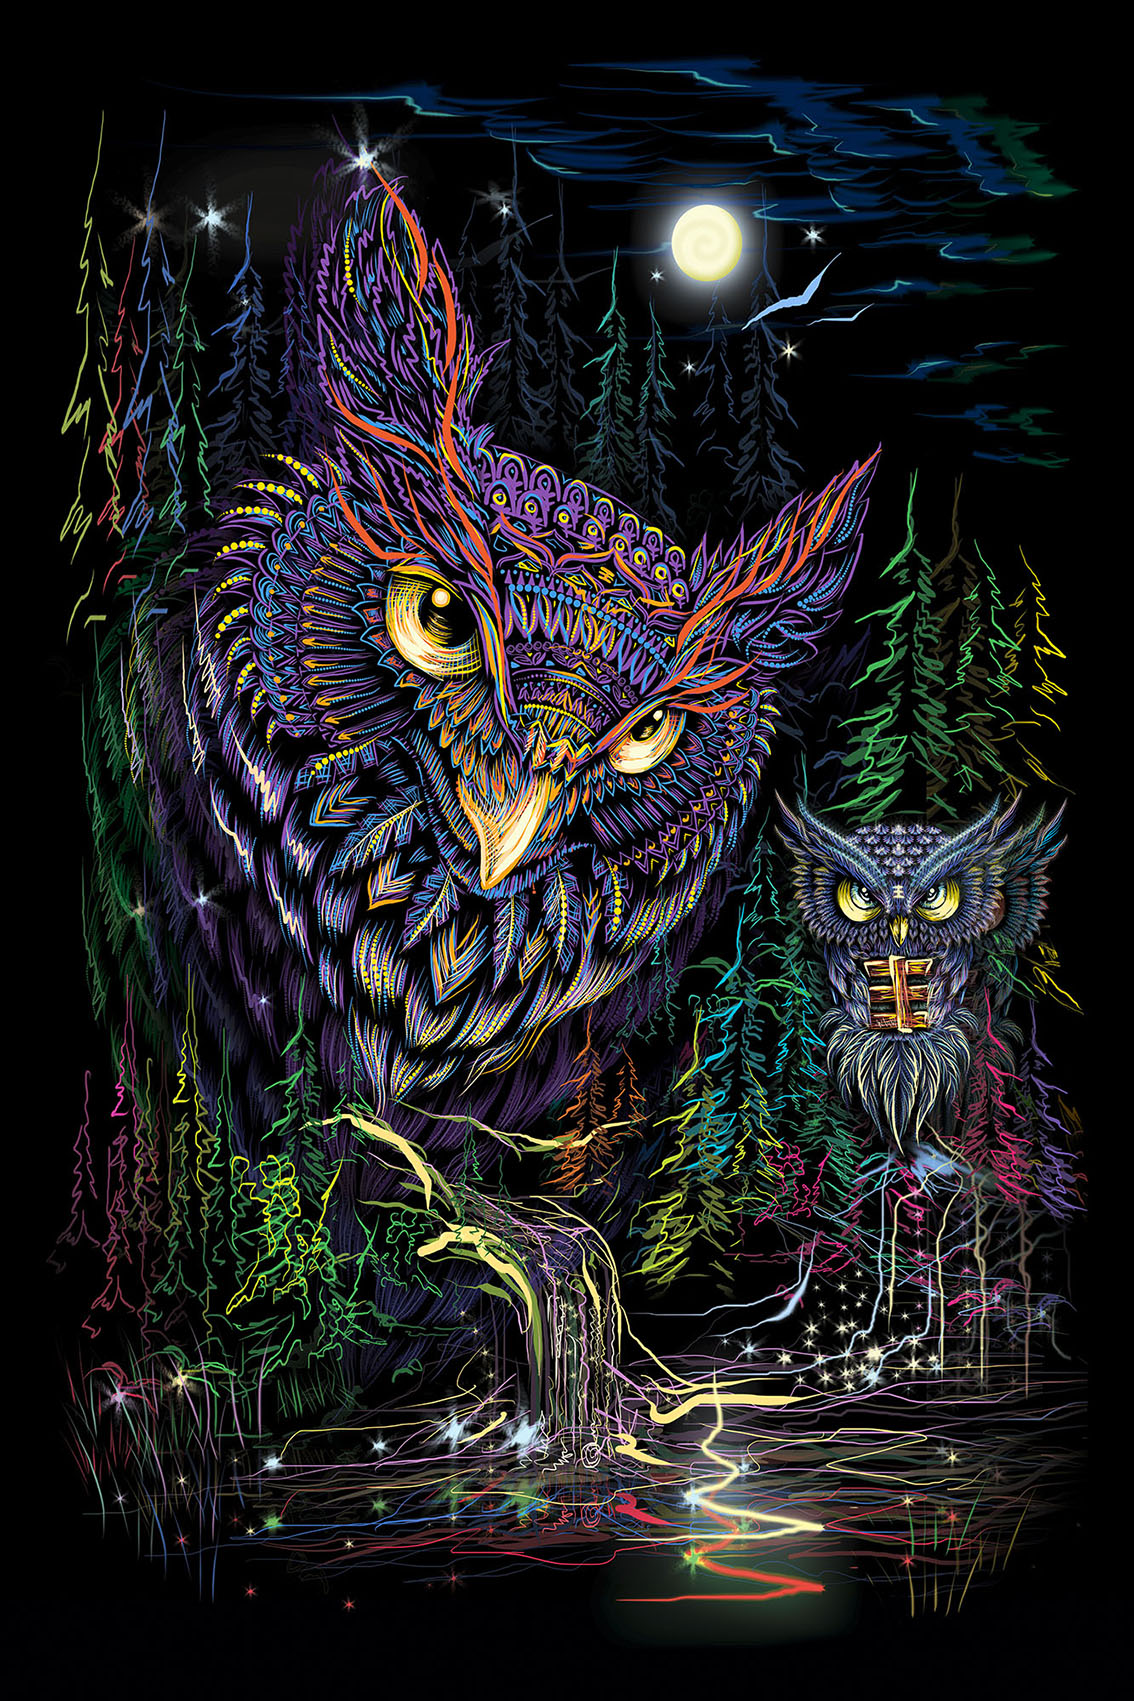 MIDNIGHT OWLS